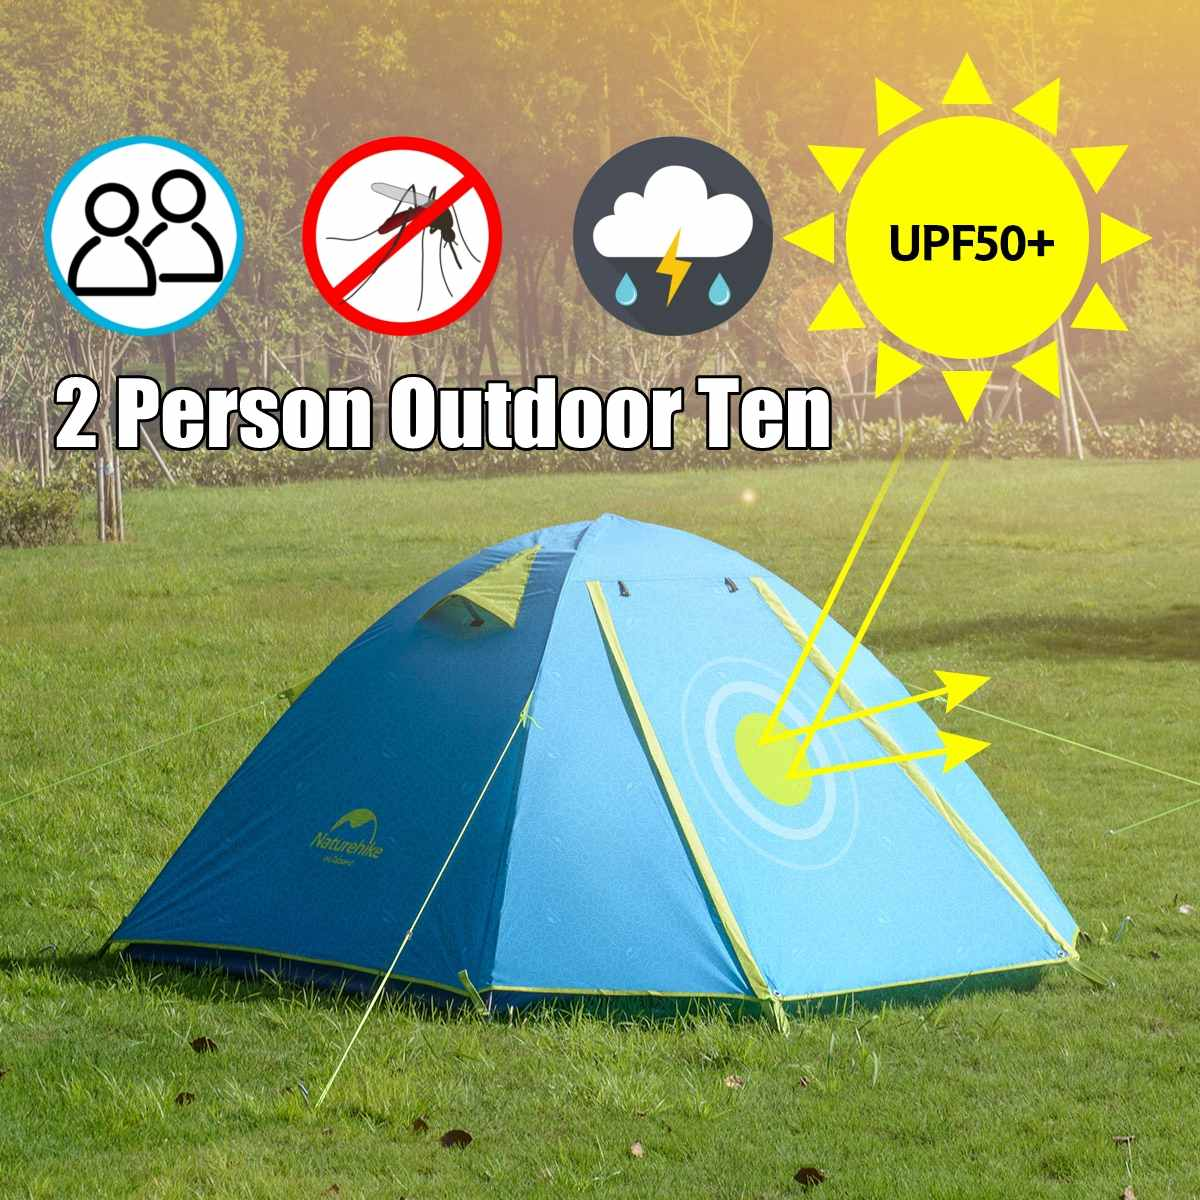 2 Person  PU2000mm Waterproof Camping Tent UPF50 UV Protection Beach Tent for Family  Hiking Climbing Self-Driving Tour Outdoor2 Person  PU2000mm Waterproof Camping Tent UPF50 UV Protection Beach Tent for Family  Hiking Climbing Self-Driving Tour Outdoor